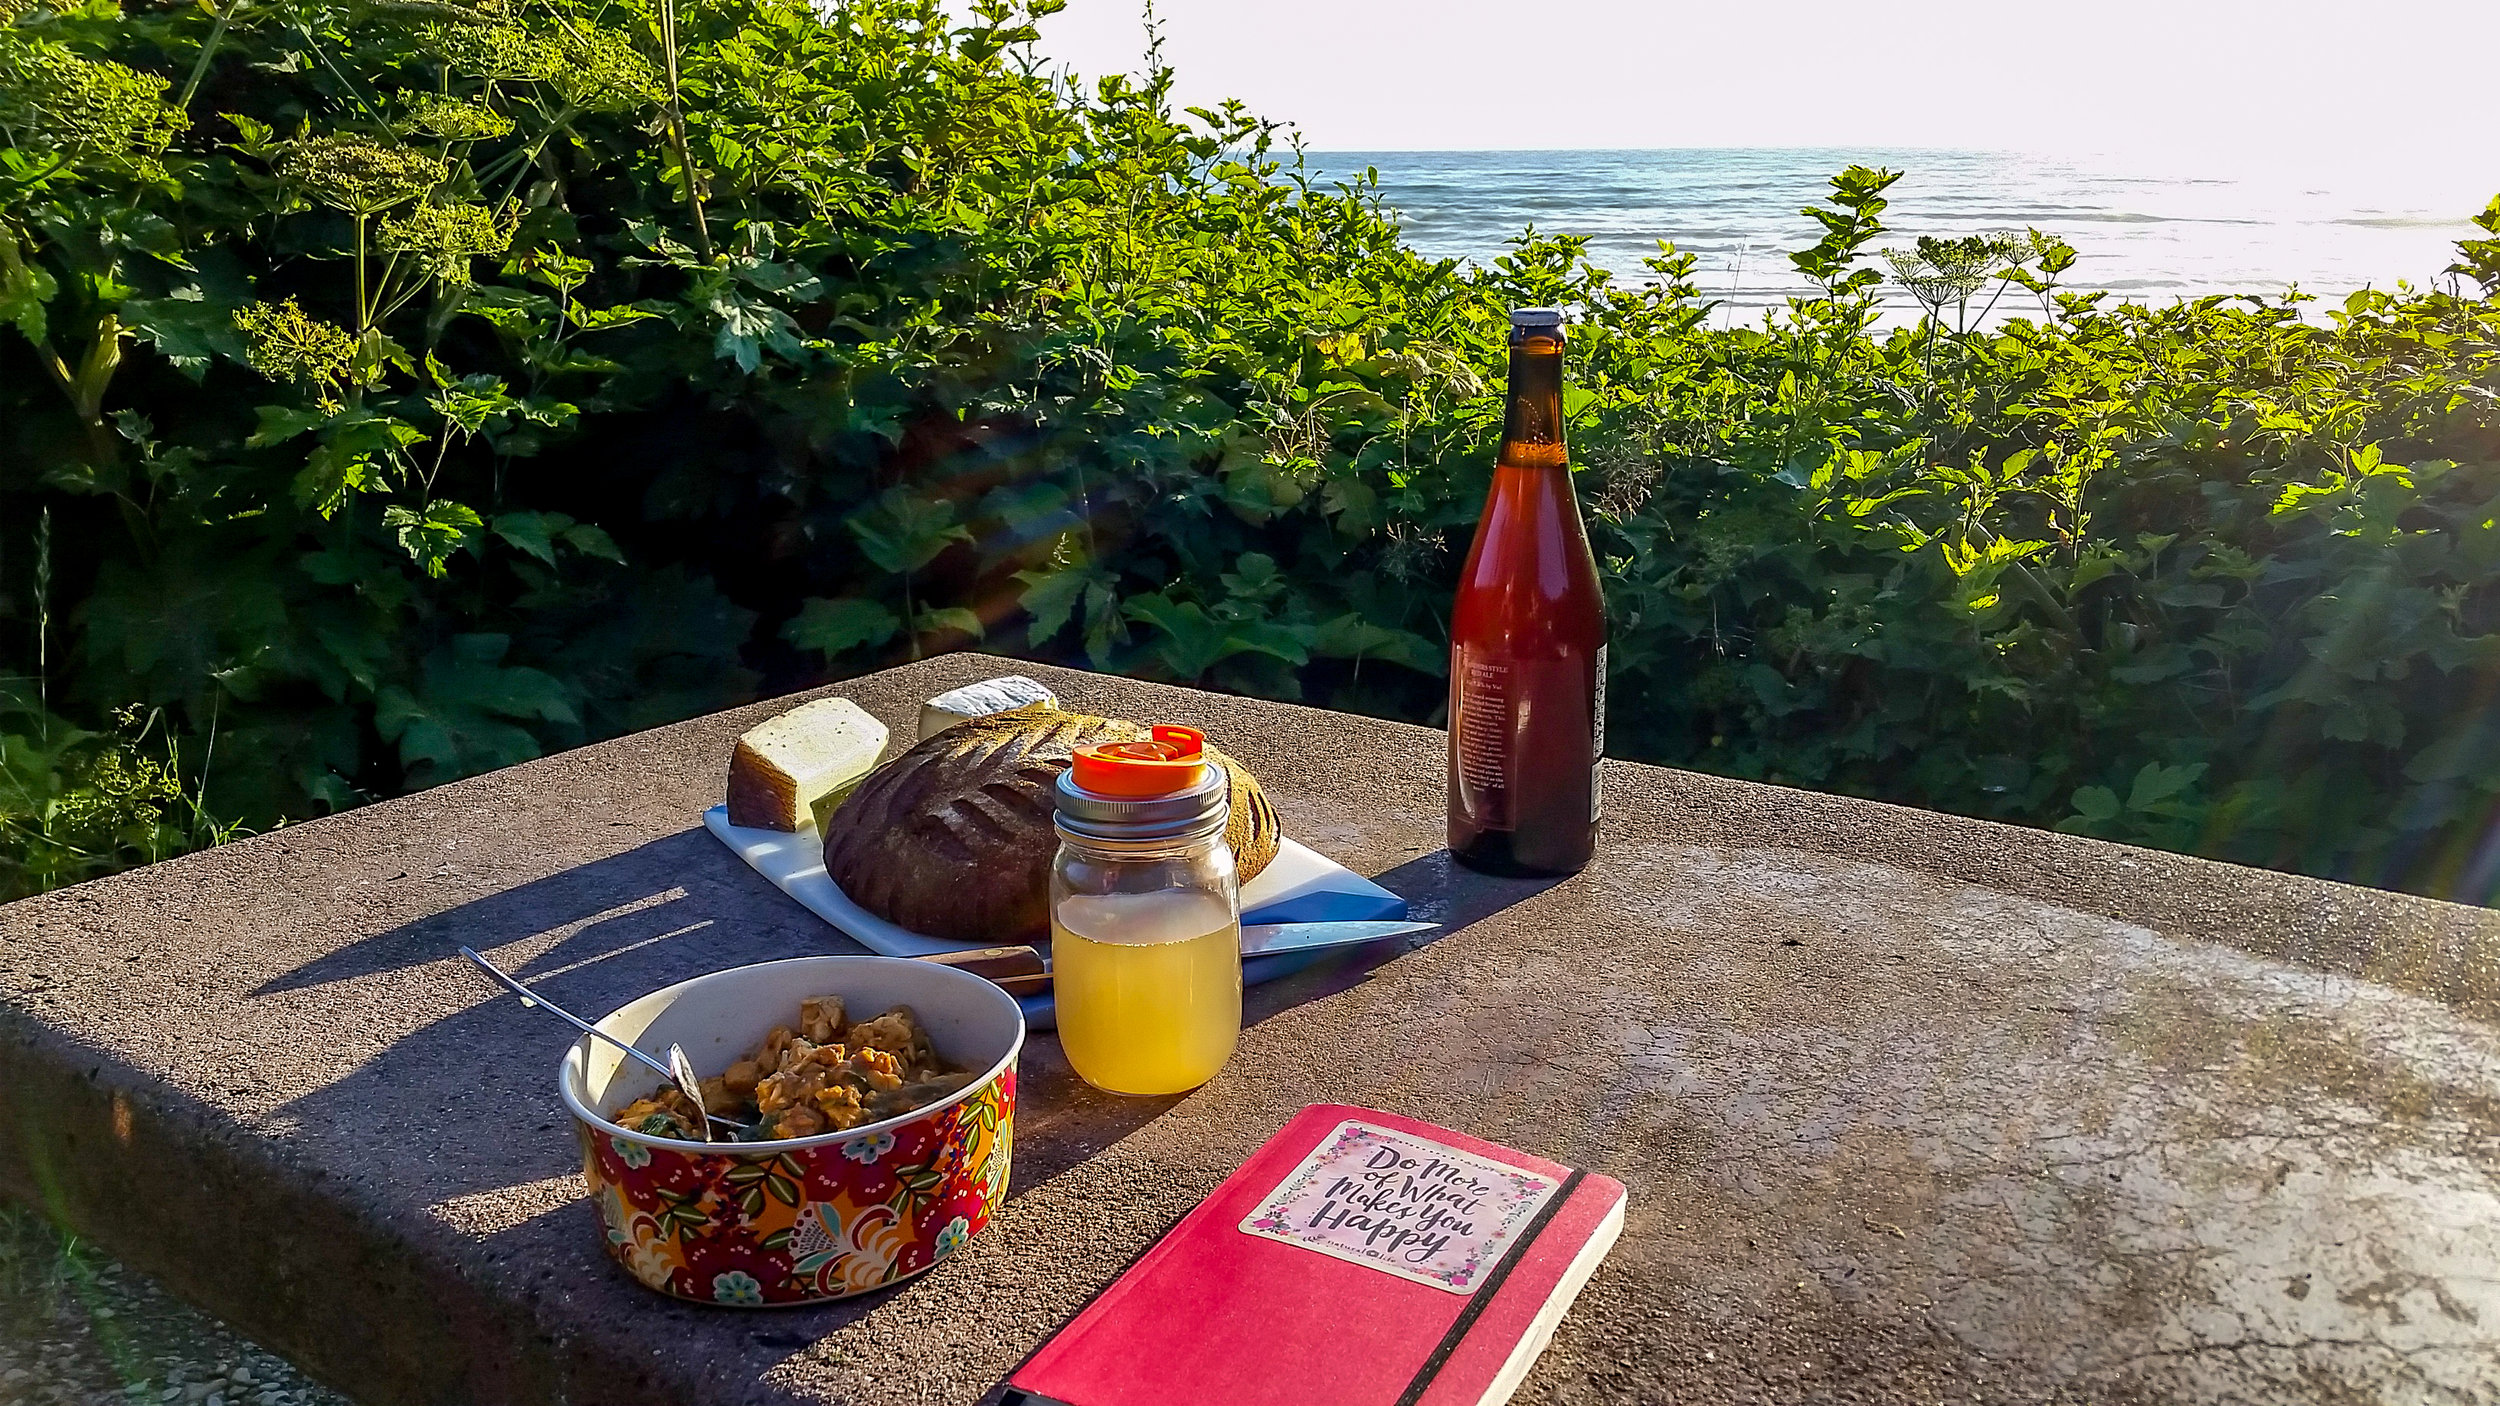 Supper by the sea.